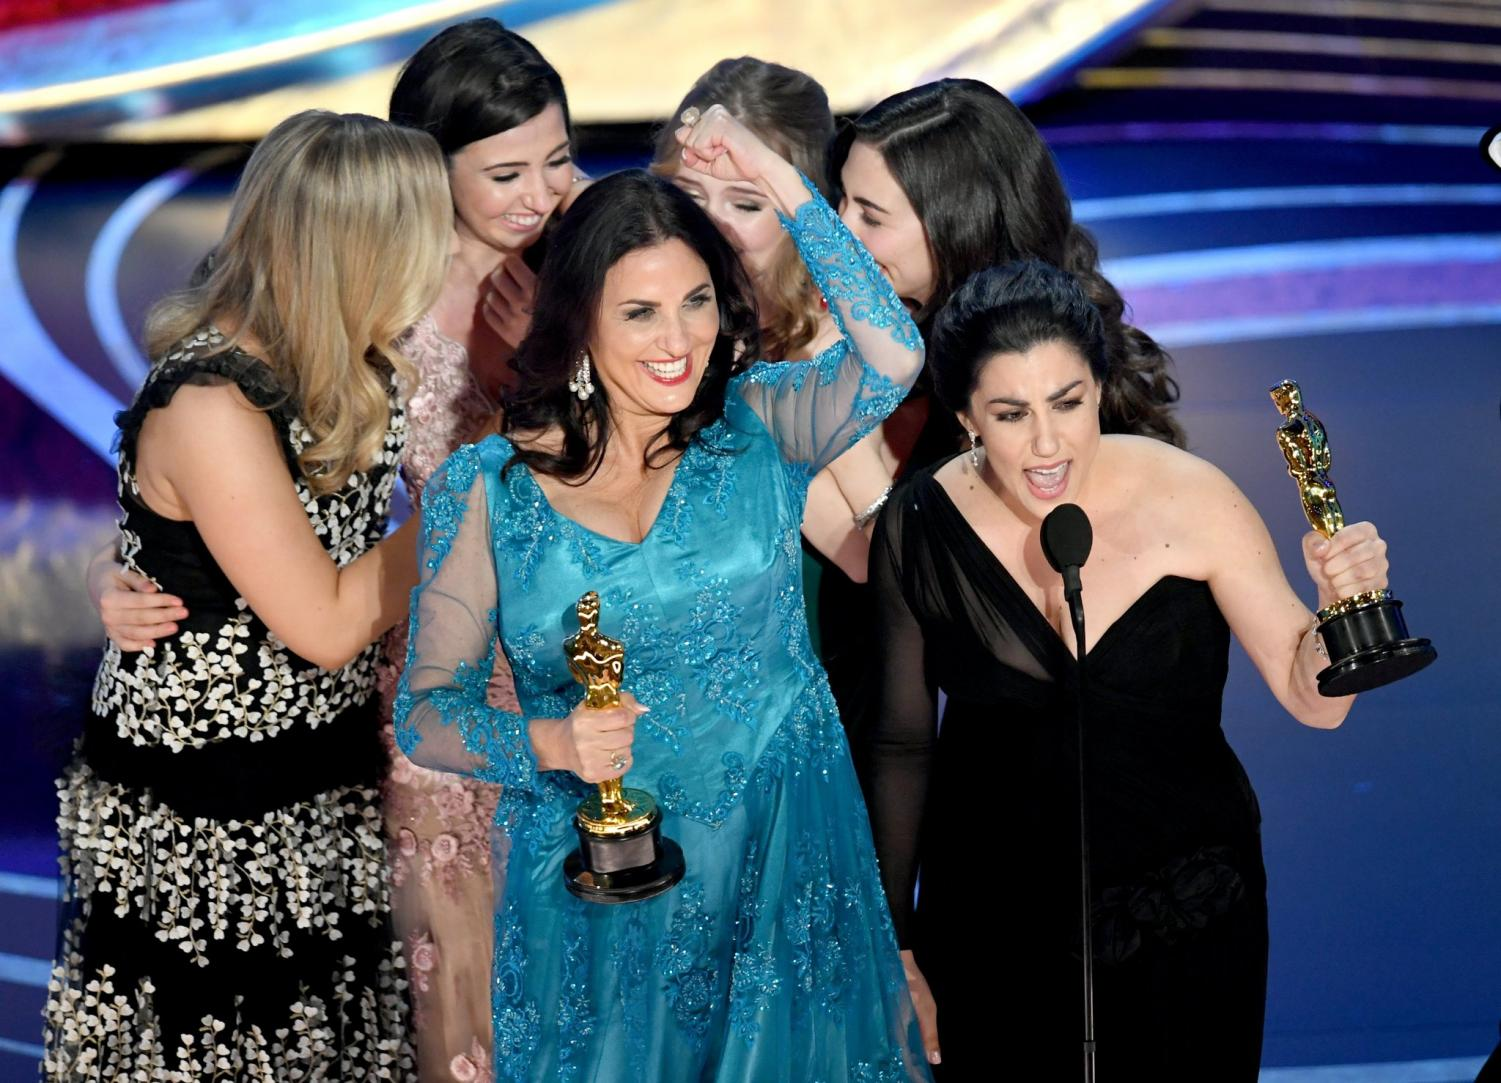 Directors Raykha Zehtabchi and Melissa Berton win the Academy Award for Documenray (Short Subject) for their film